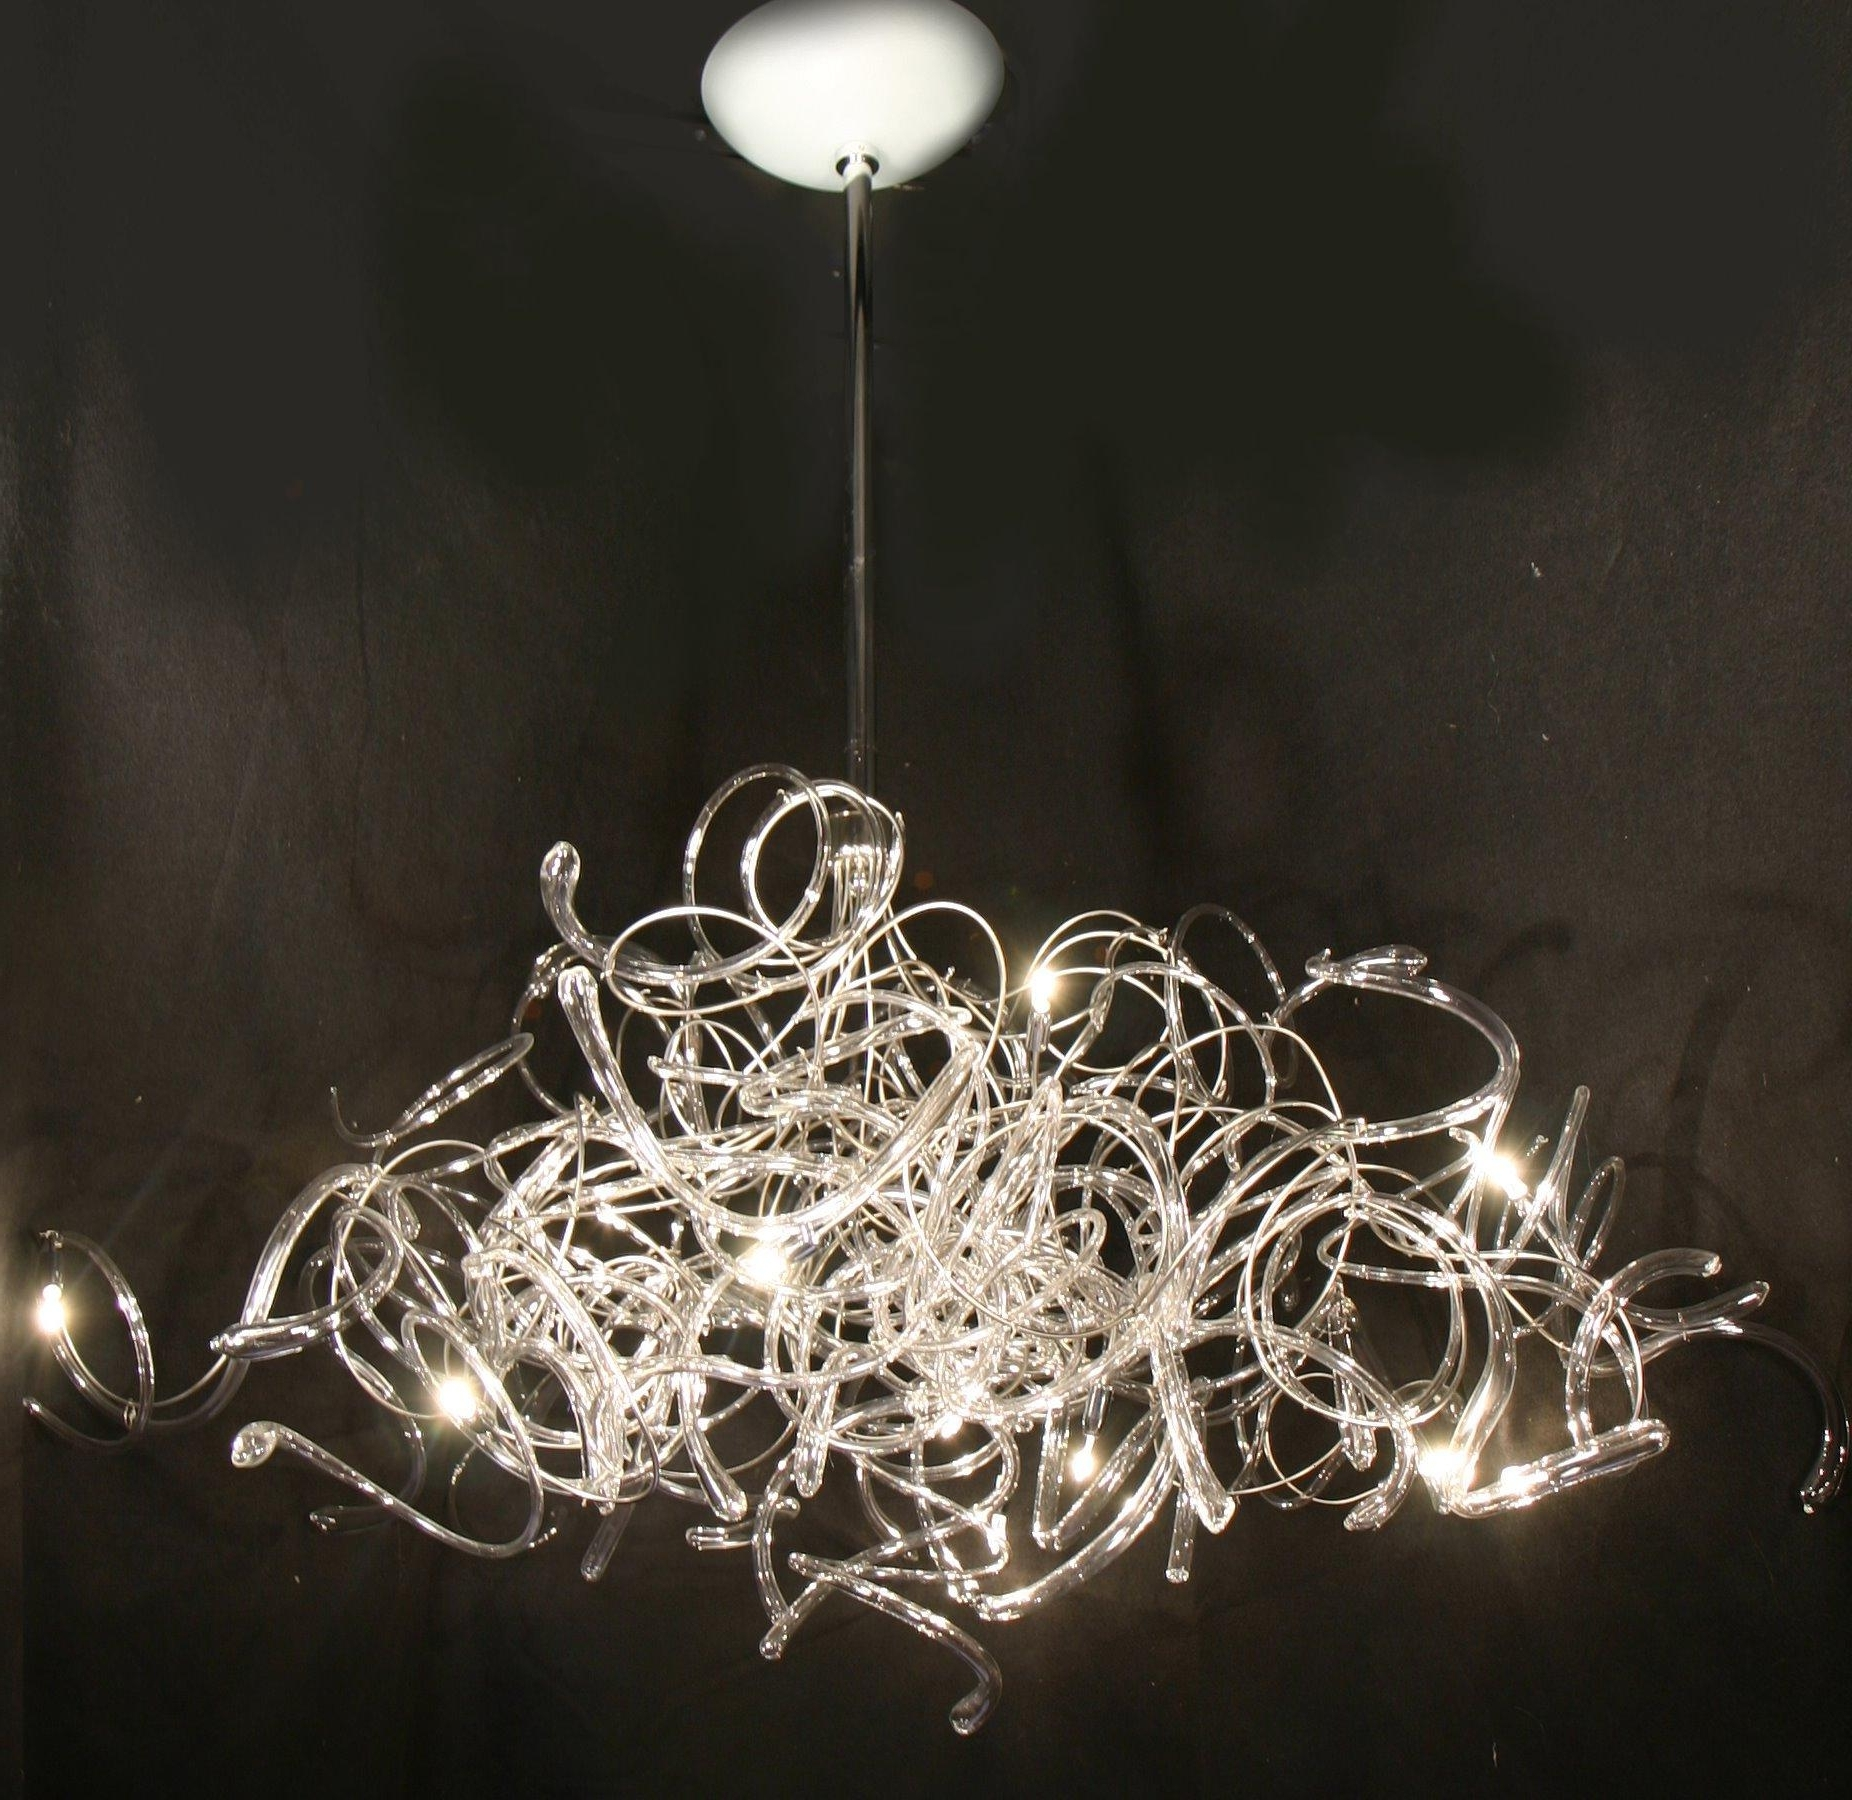 Contemporary Chandeliers Regarding Famous Chandeliers : Contemporary Chandelier Lighting Luxury Contemporary (View 7 of 15)